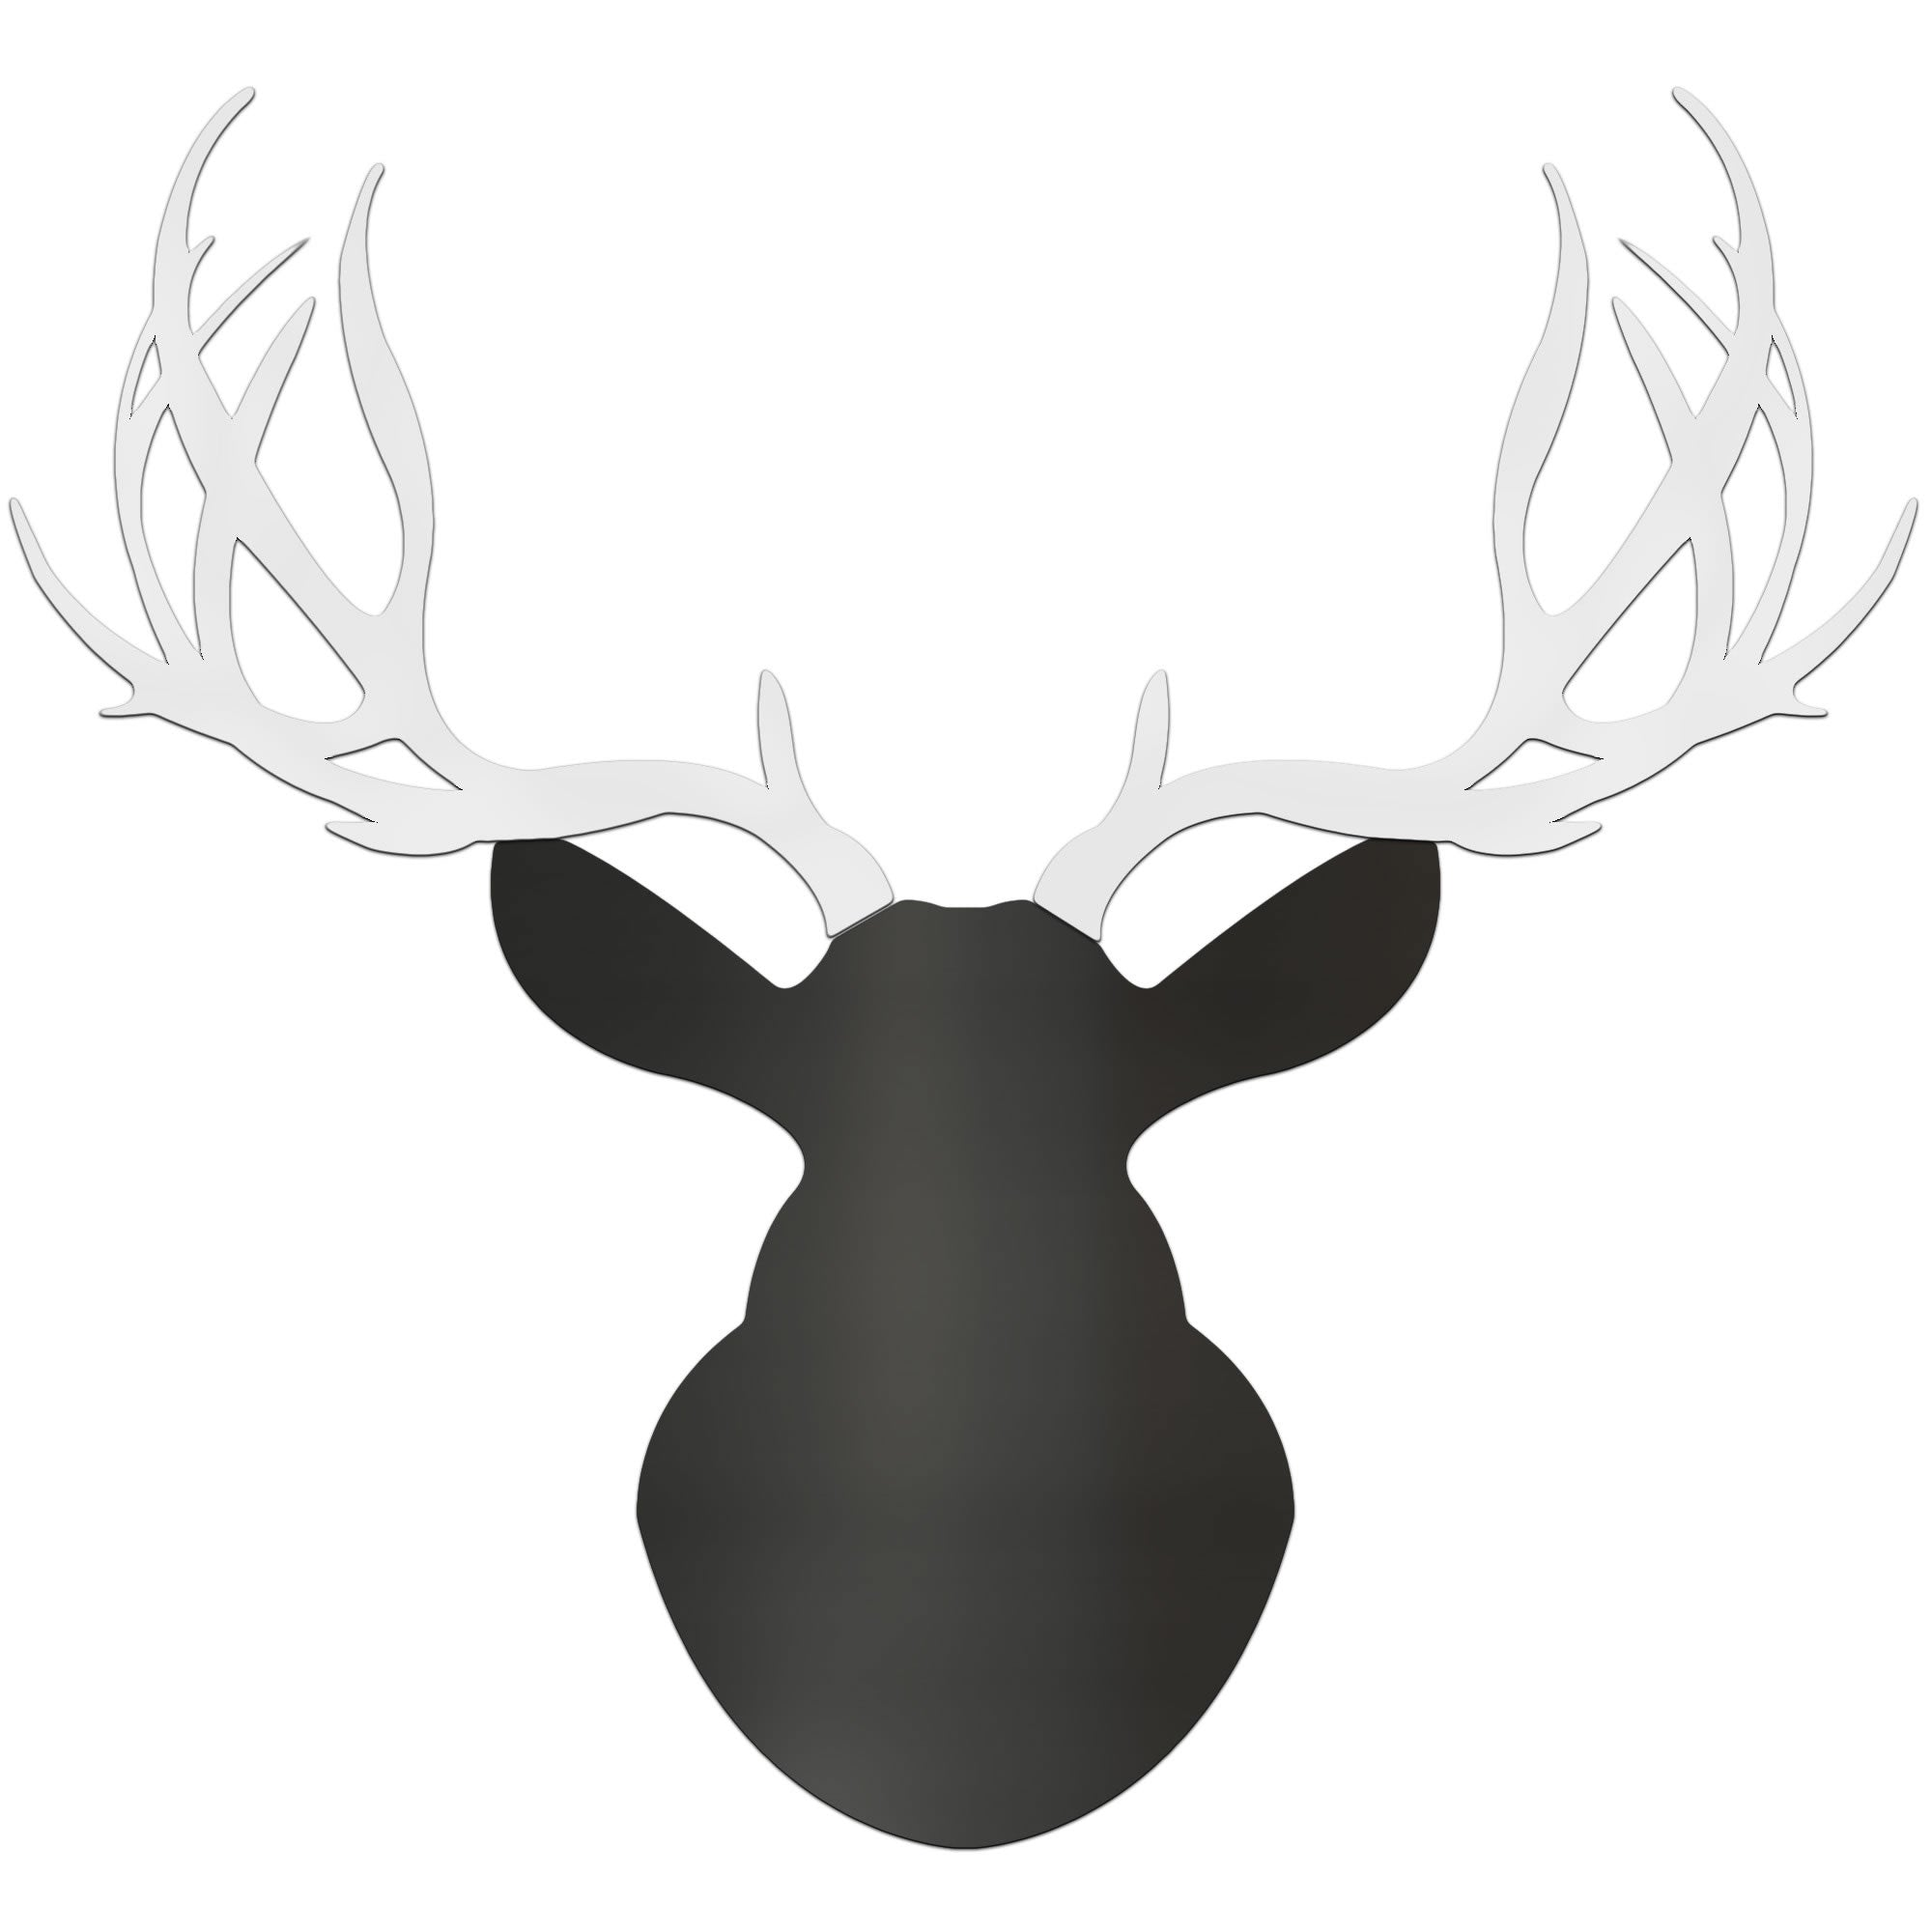 MODERN BUCK | 36x36 in. Black & White Deer Cut-Out